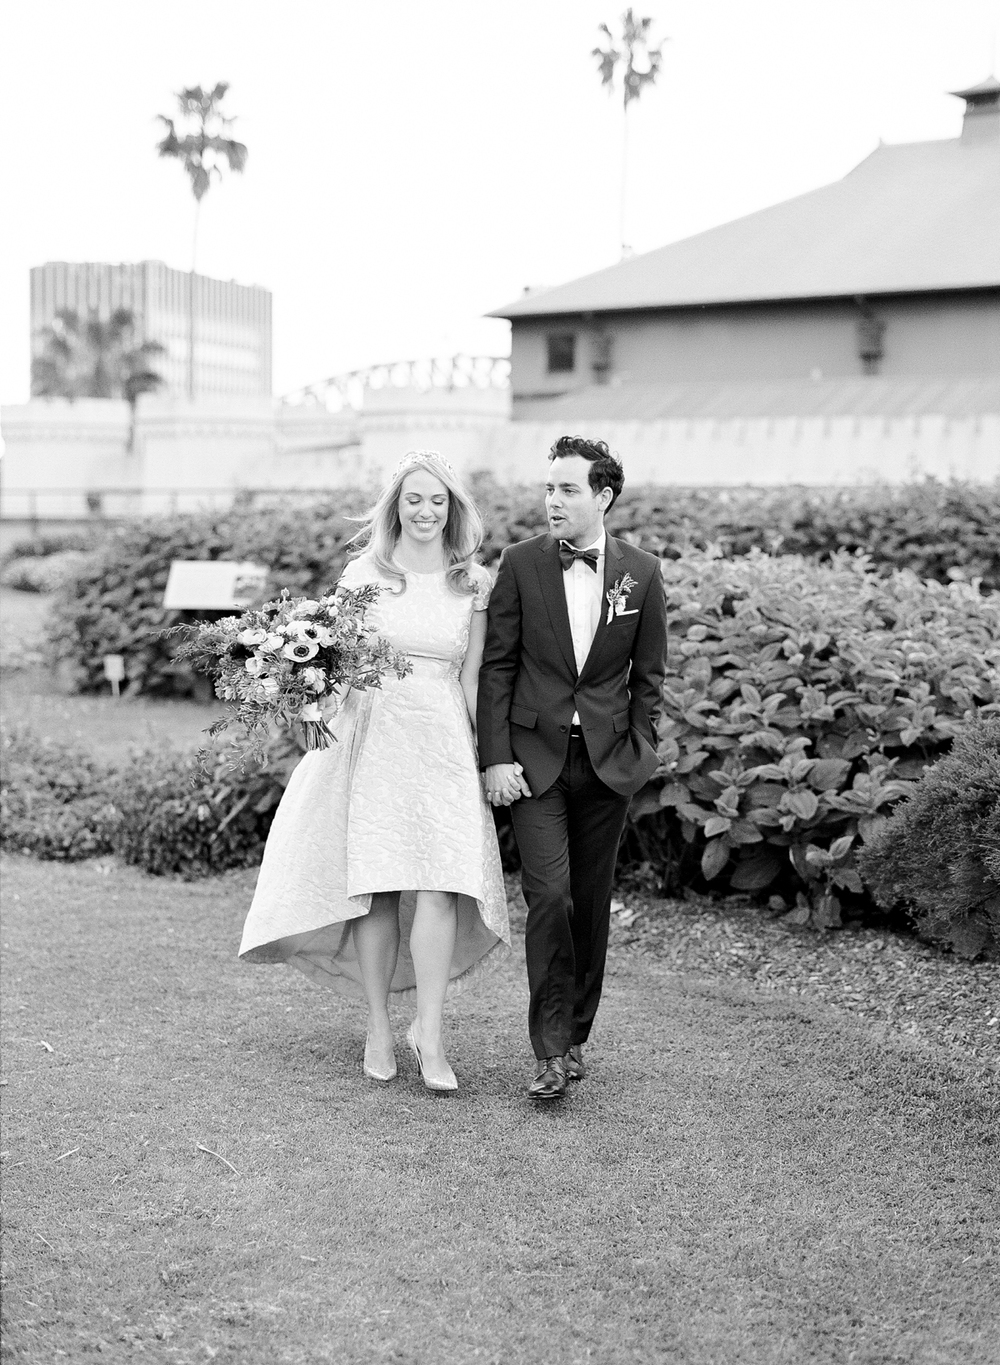 Mr-Edwards-refined-film-photography.-Sydney-Wedding-Photography_2277.jpg